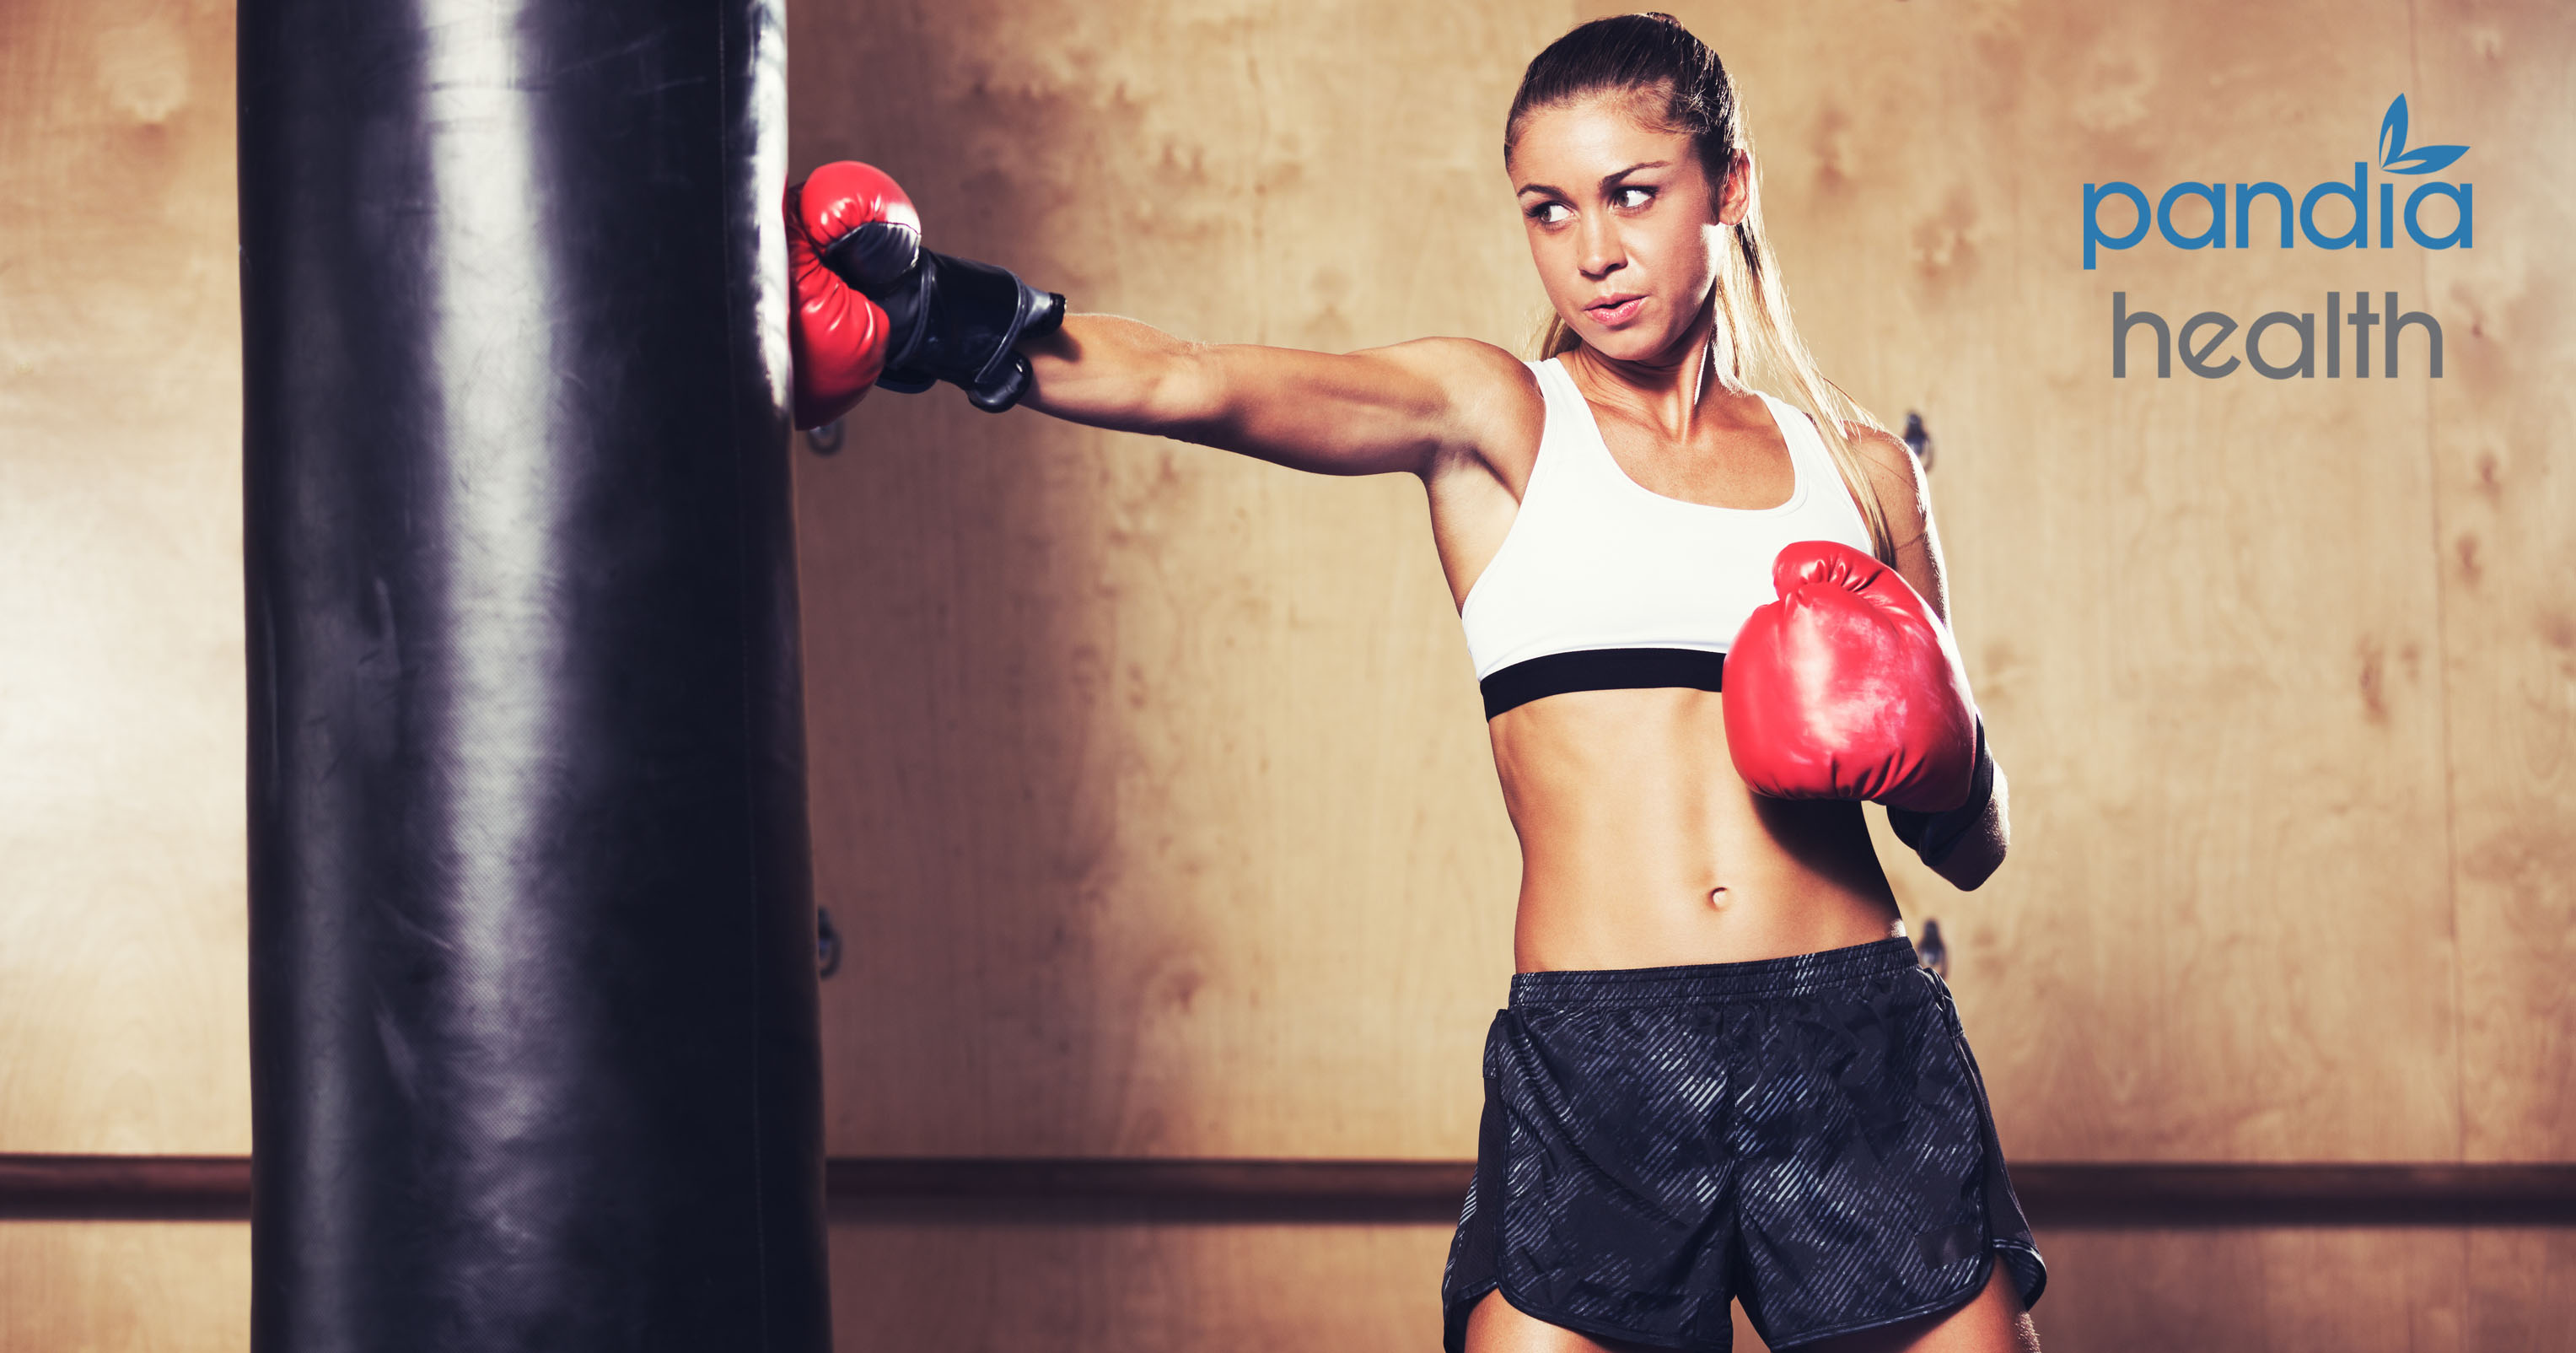 Woman in kickboxing gloves punching bag